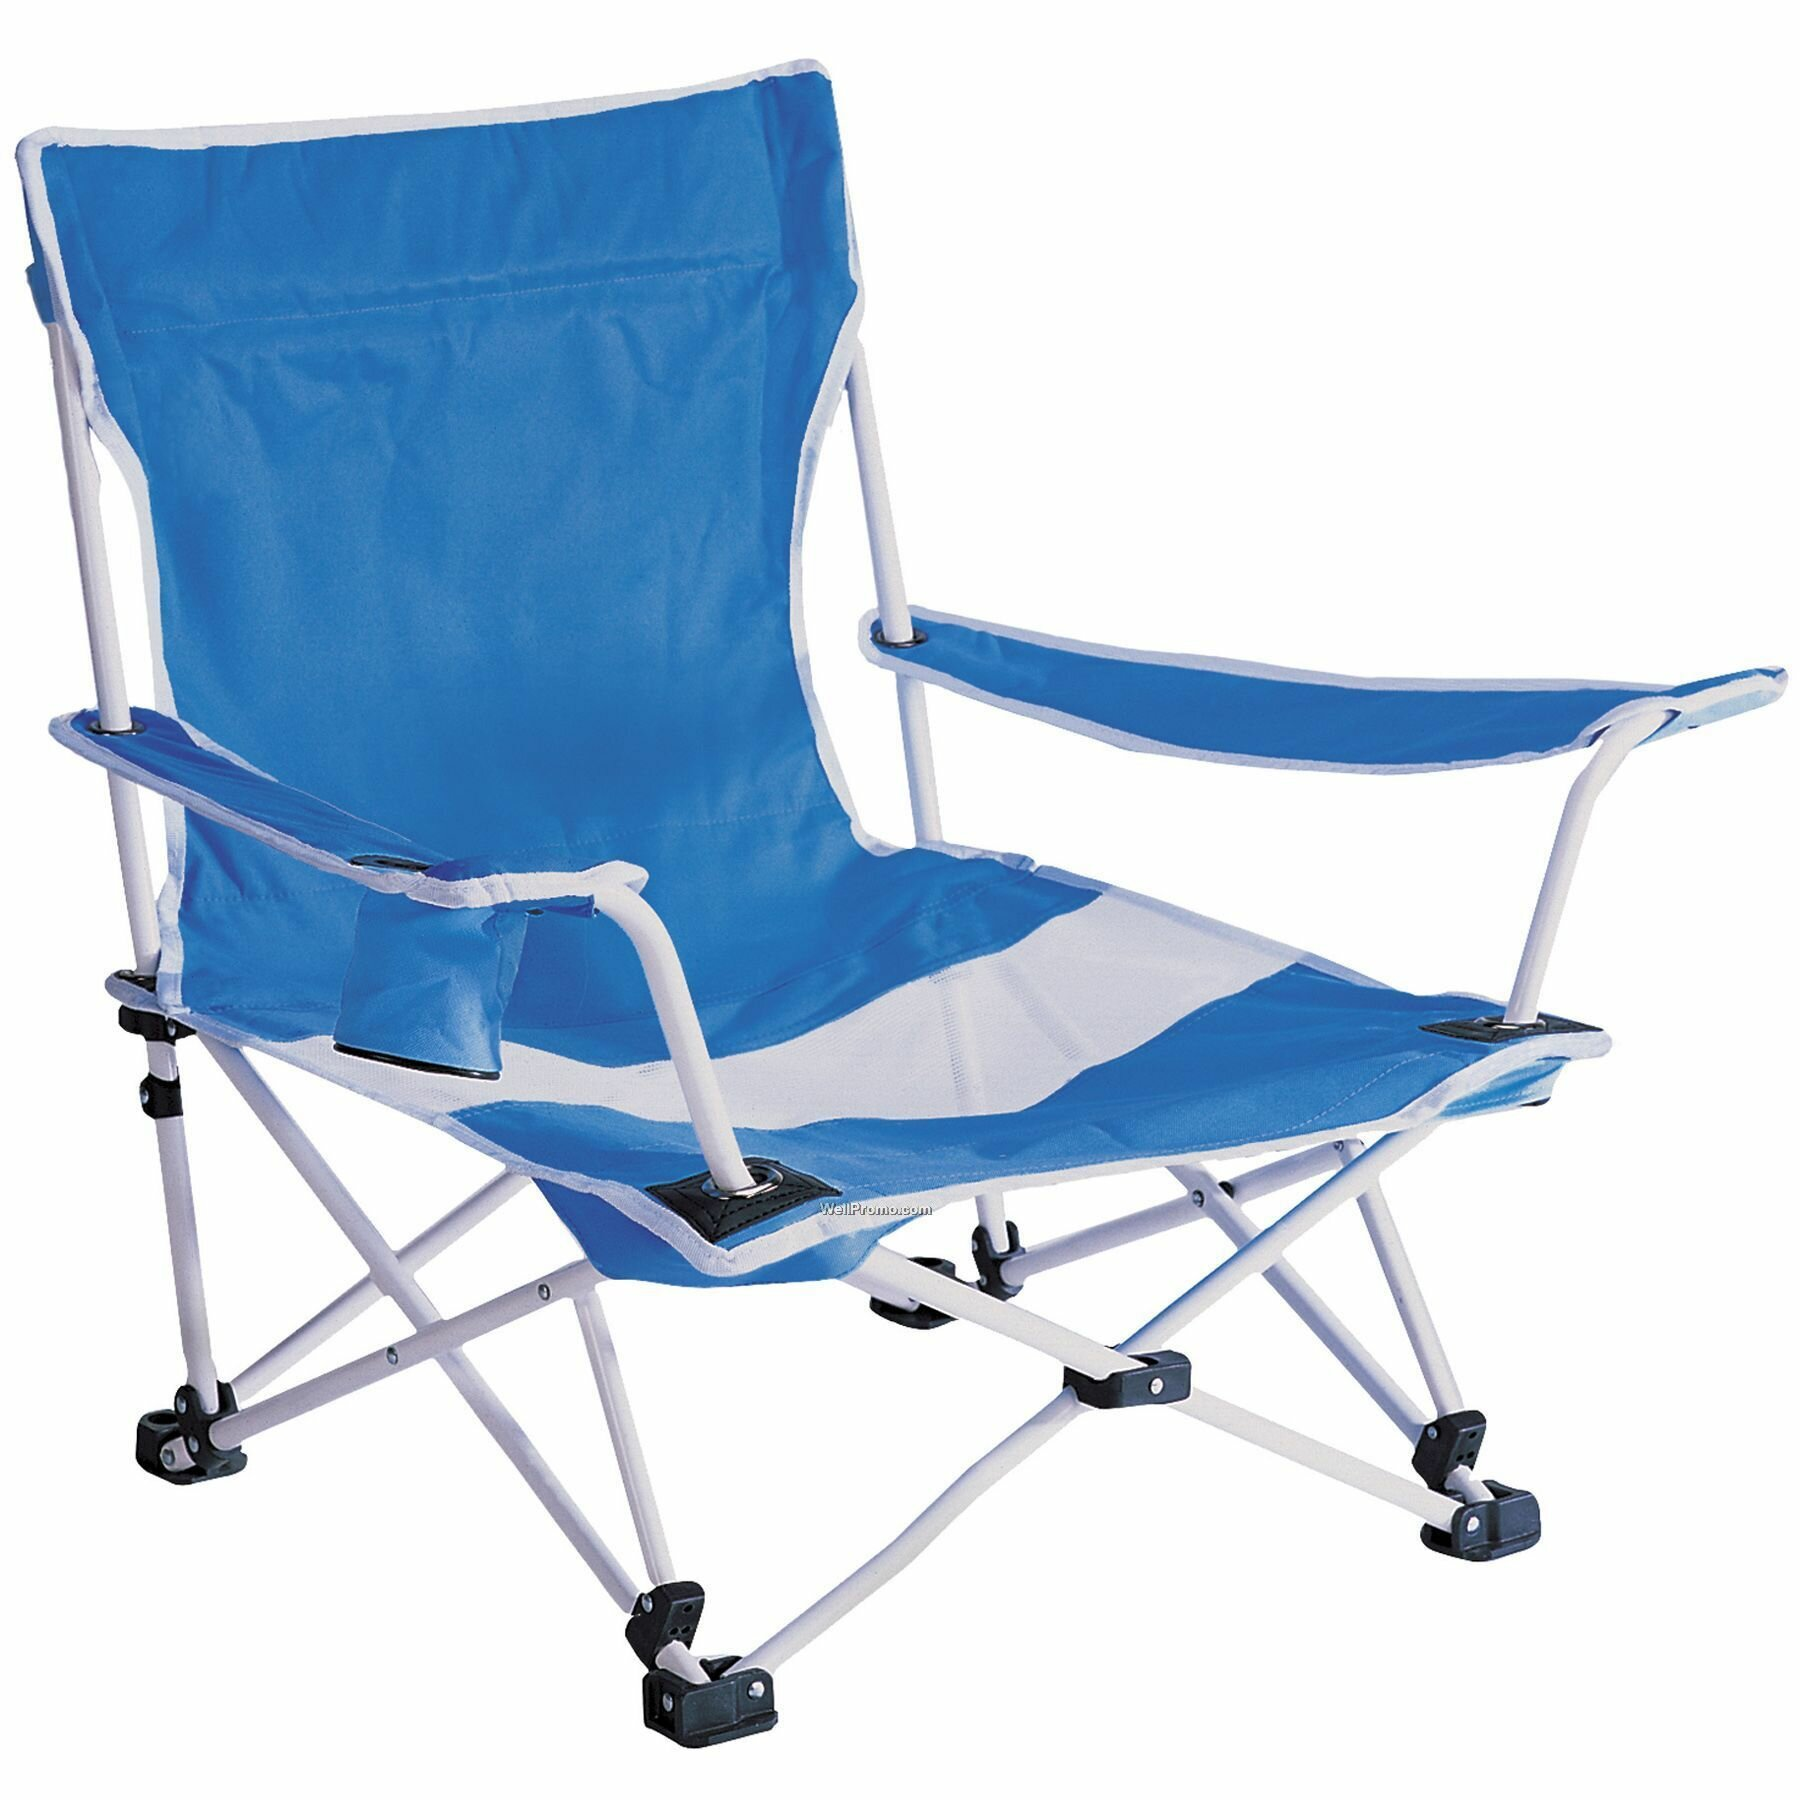 folding beach chairs at target saddle leather office chair inspirations with straps tri fold